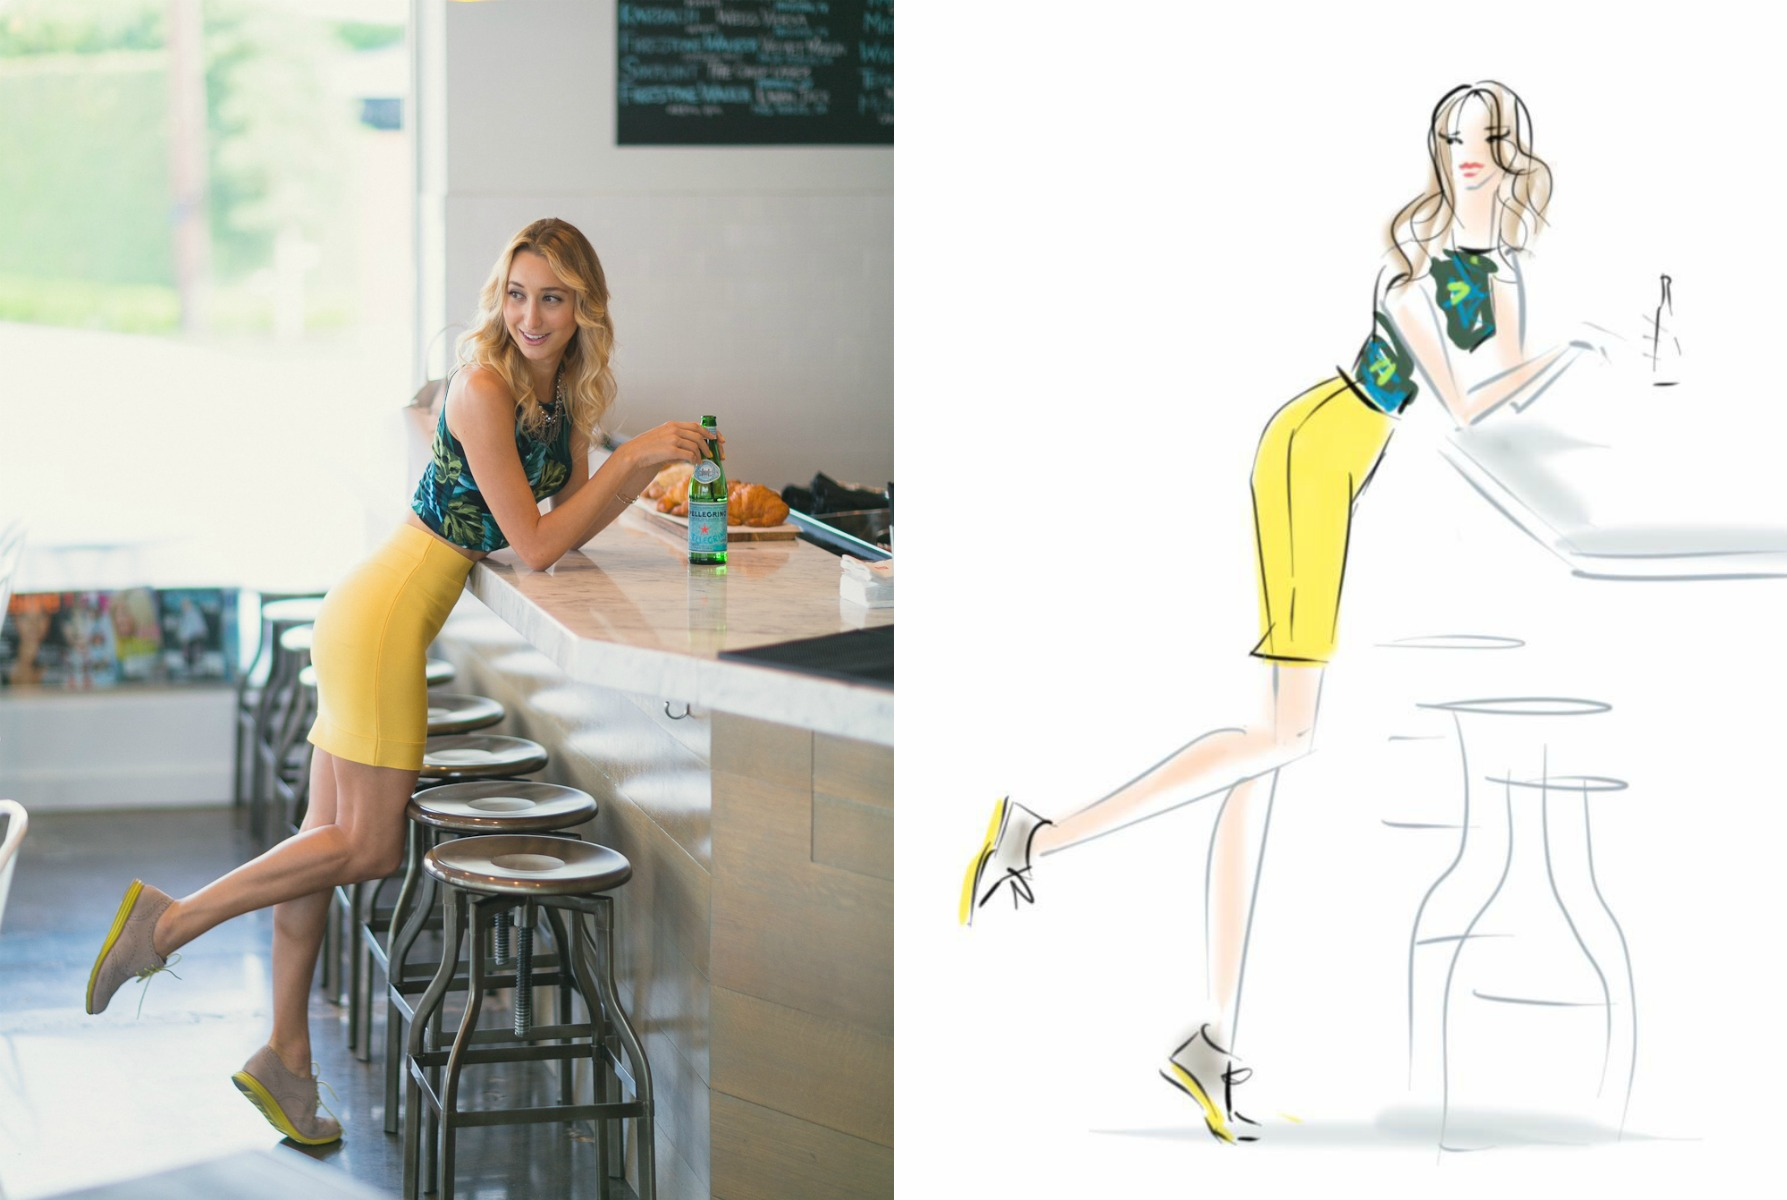 Instant Illustrations With Chic Sketch